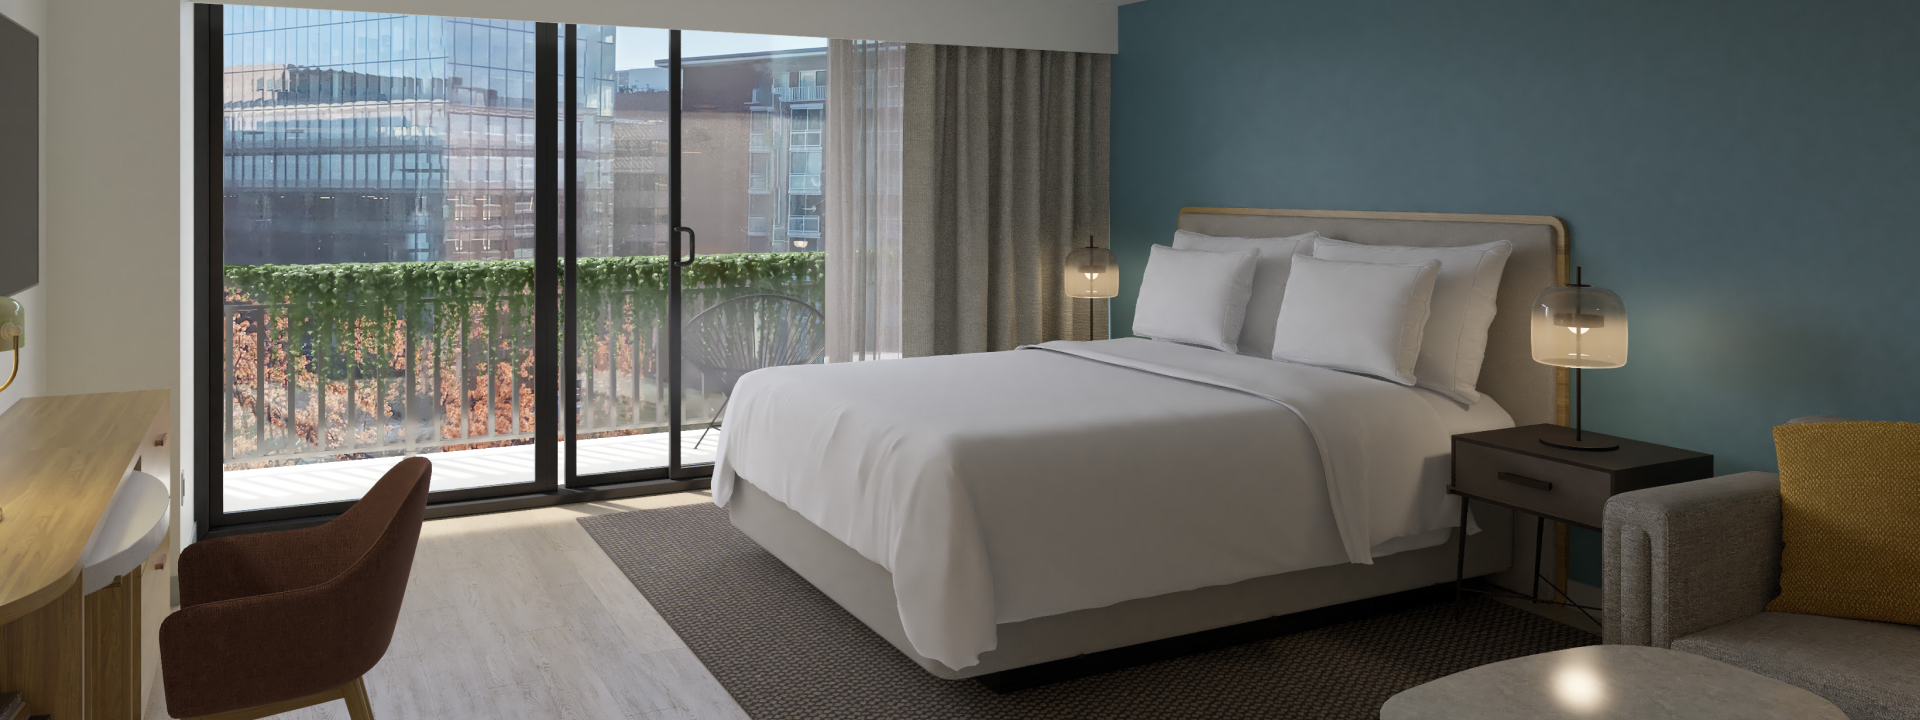 Standard room with bed and desk at Hotel Madera